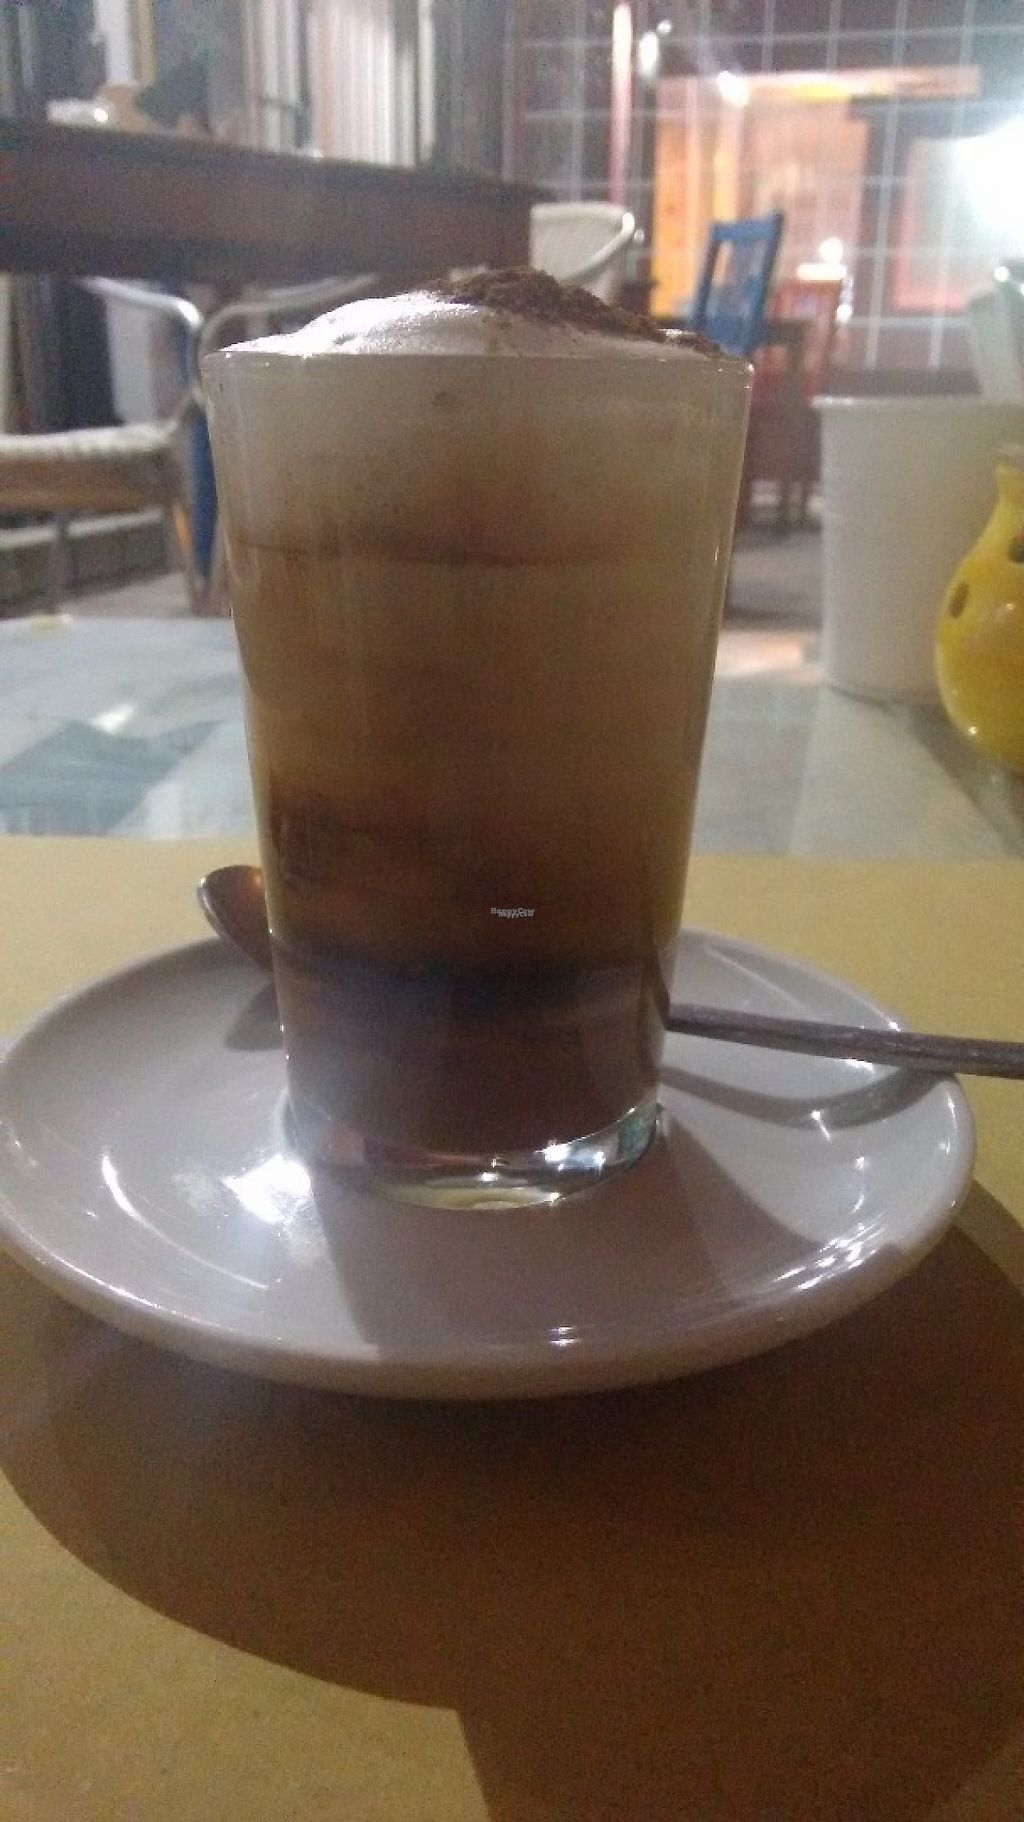 "Photo of Fuori di Zucca  by <a href=""/members/profile/StephenEamonn"">StephenEamonn</a> <br/>Barraquito, a delicious coffee liquor drink, a Tenerife special! <br/> January 17, 2017  - <a href='/contact/abuse/image/71702/212631'>Report</a>"